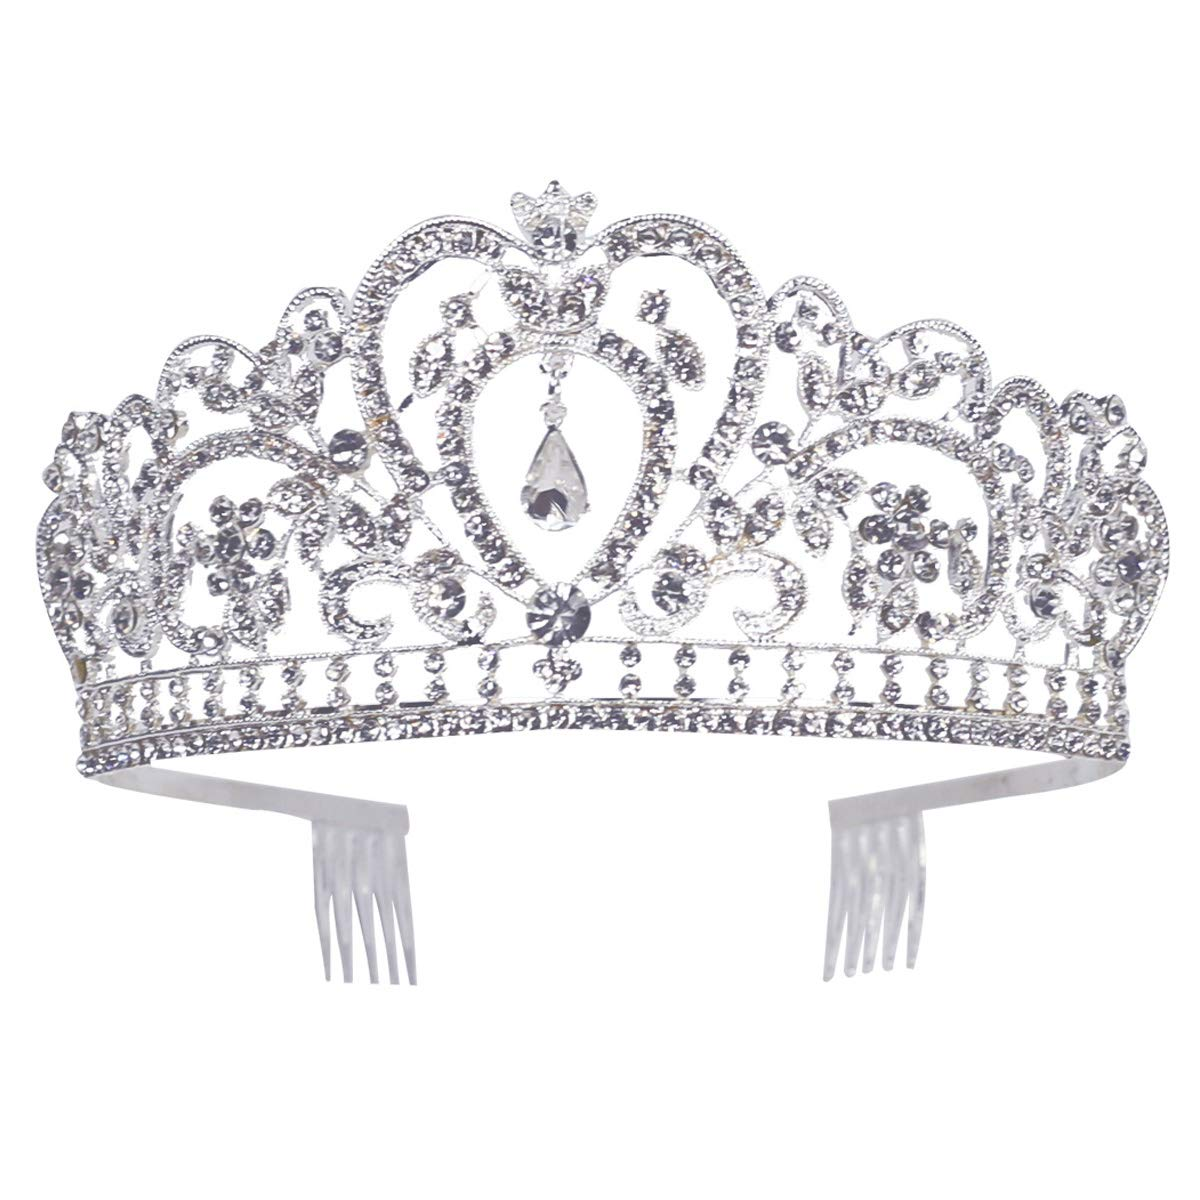 Makone Crystal Crowns and Tiaras with Tomb for Girl or Women Birthday Party Wedding Tiaras (Style-5)